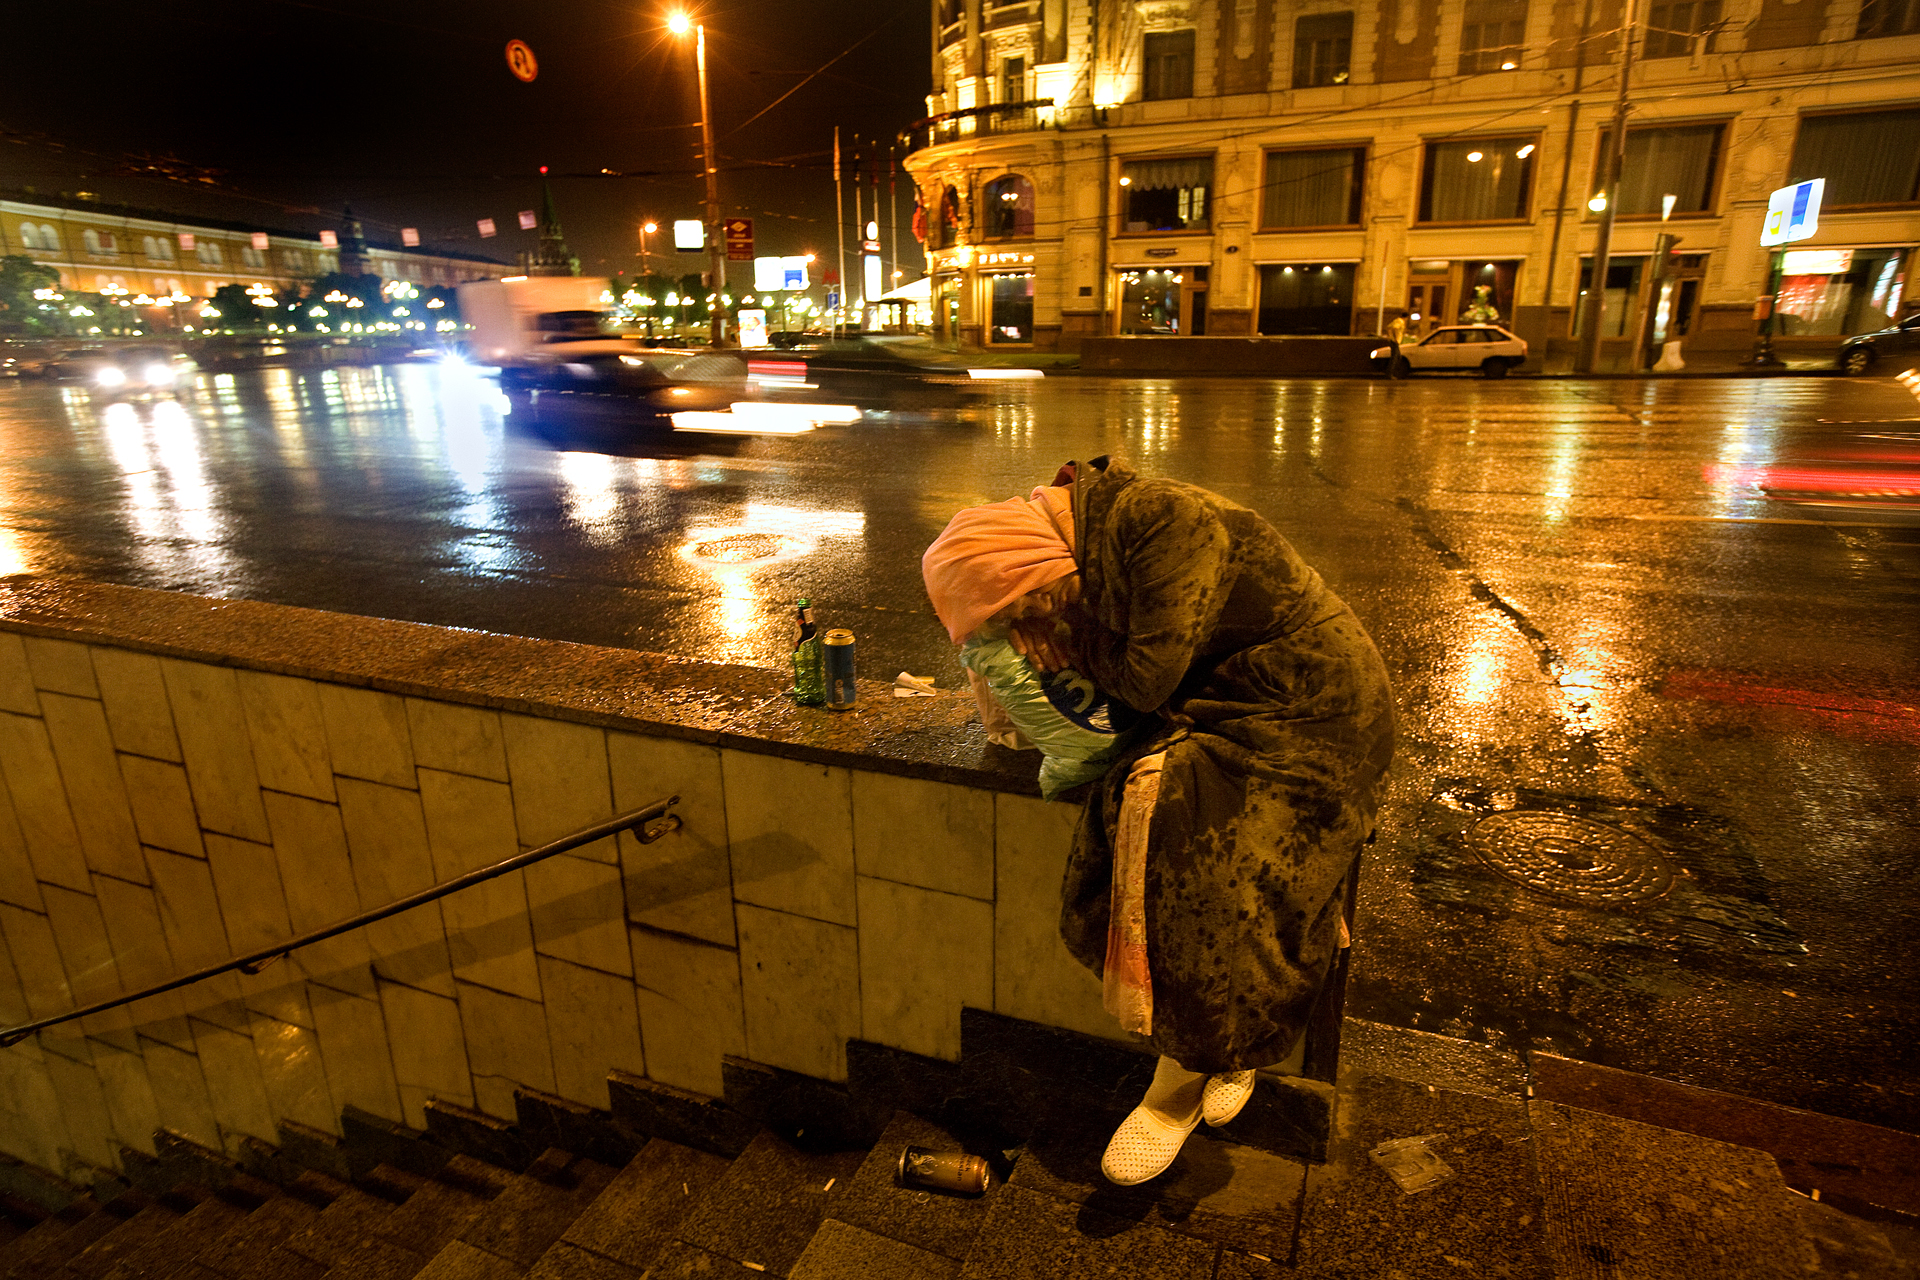 2:50 AM - A homeless woman sleeps on Tverskaya Street on a rainy Moscow night.